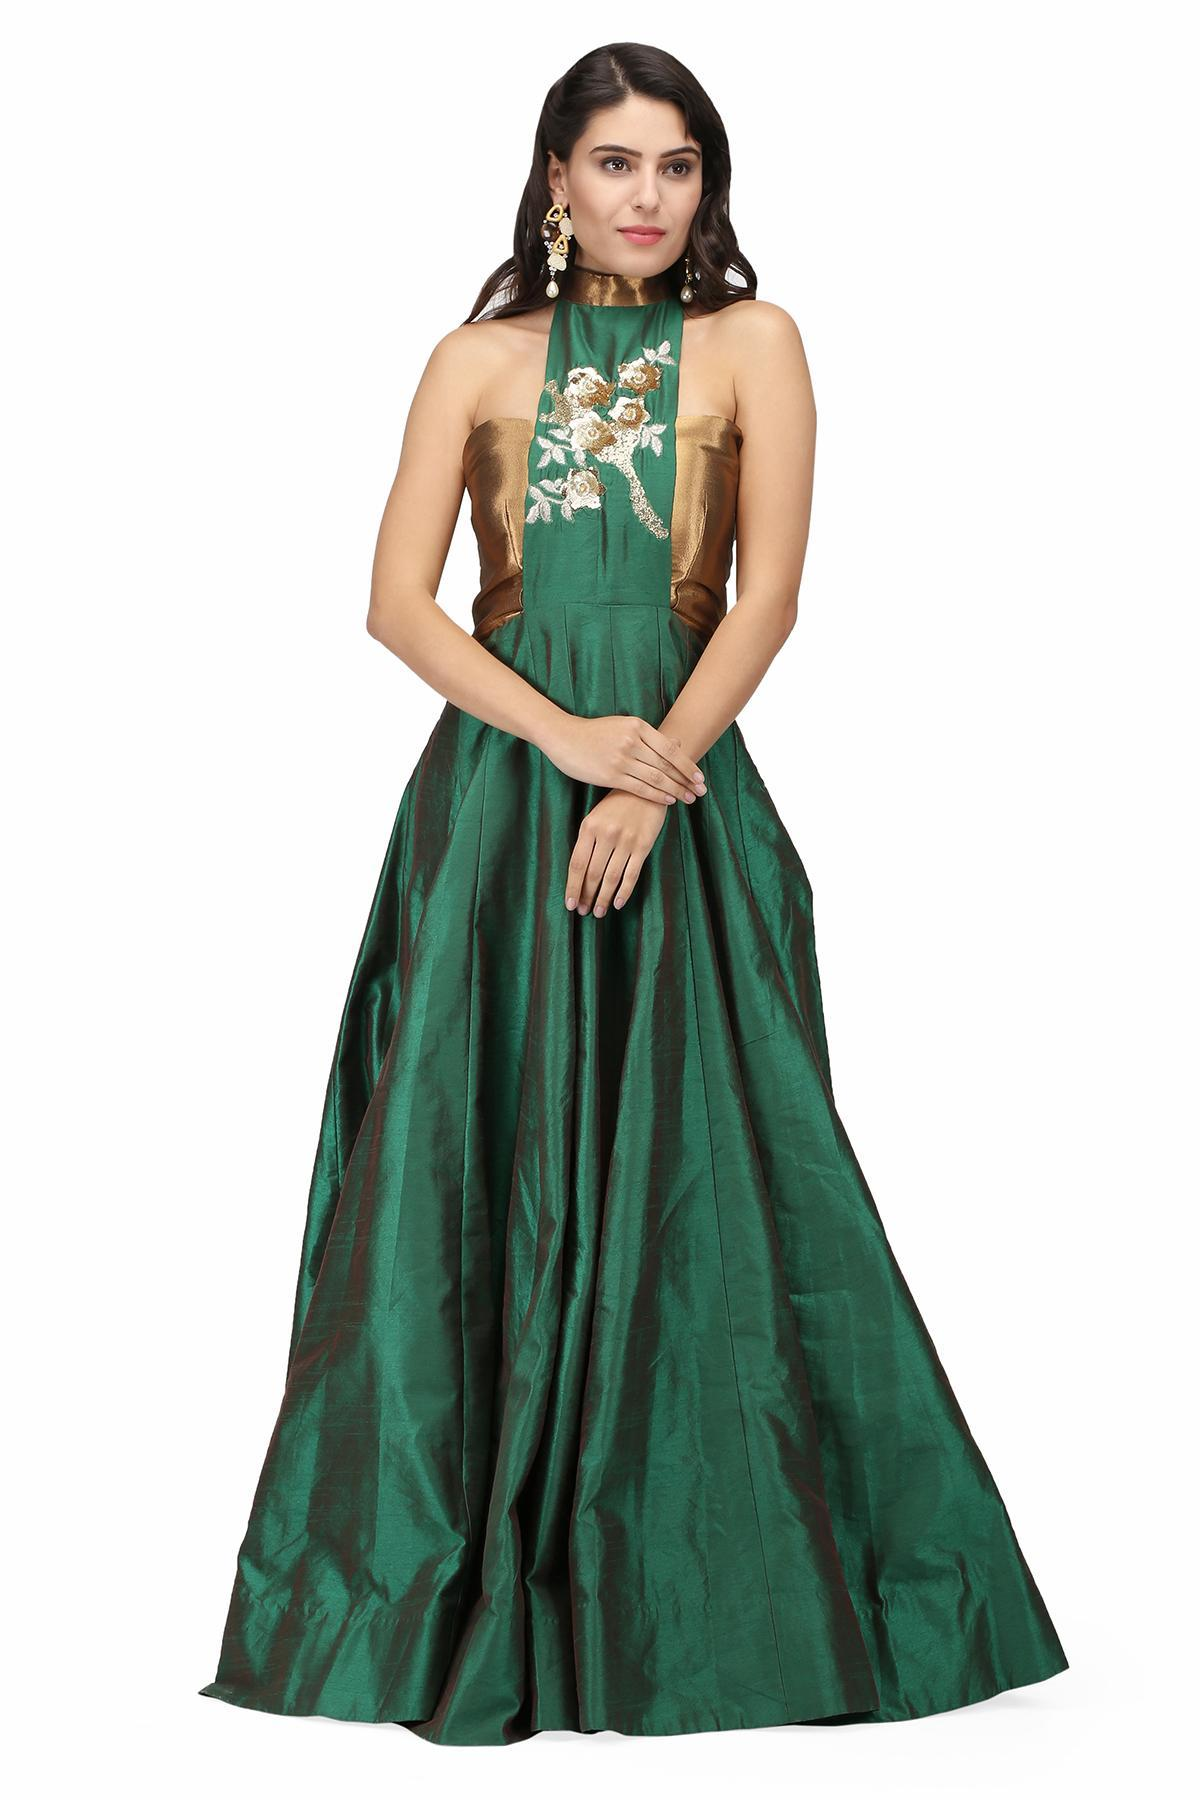 72b06347 Emerald Green Sultry Halter Gown by Violet by Preeti Singhal for ...